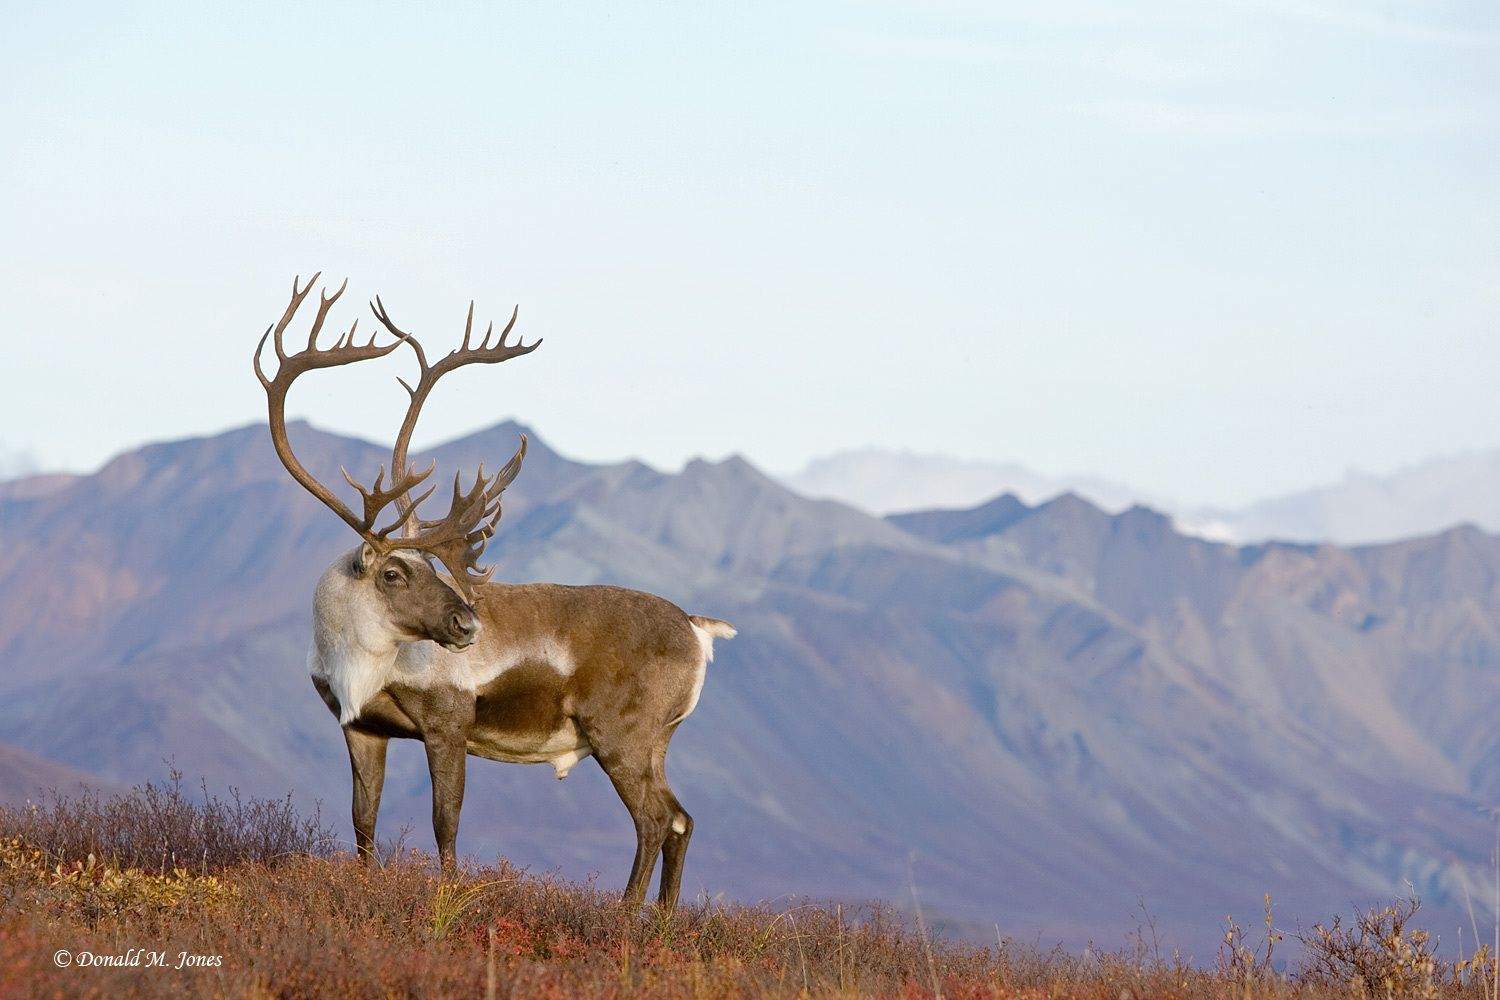 1637_1barren_ground_caribou01892d.jpg (JPEG Image, 1500